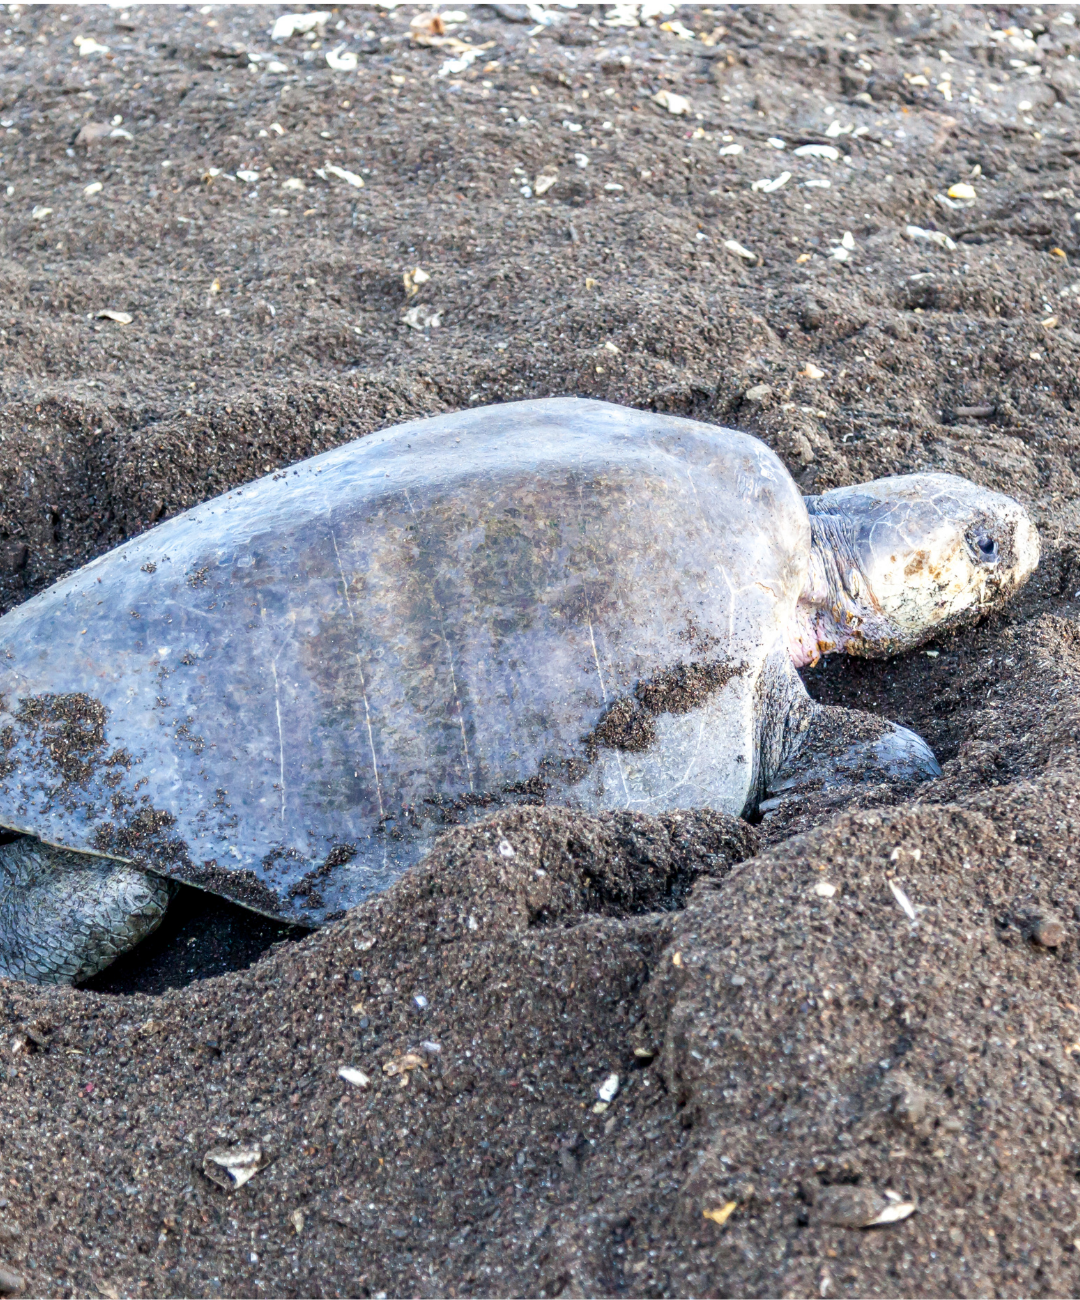 Coastal Connections Olive Ridley Sea Turtle